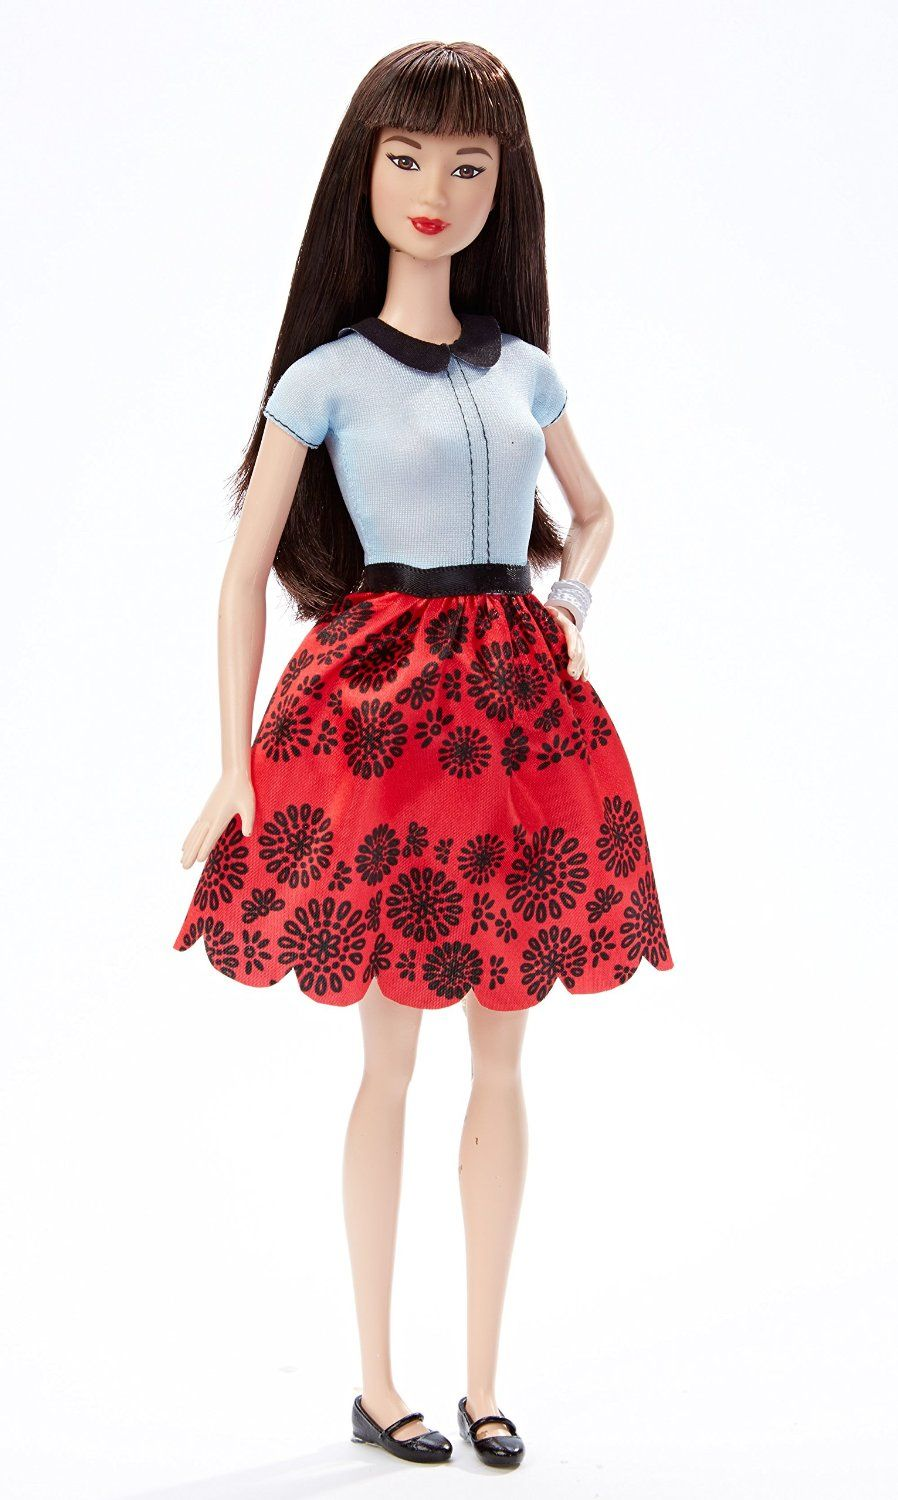 fashion obsessed talking doll thinks -